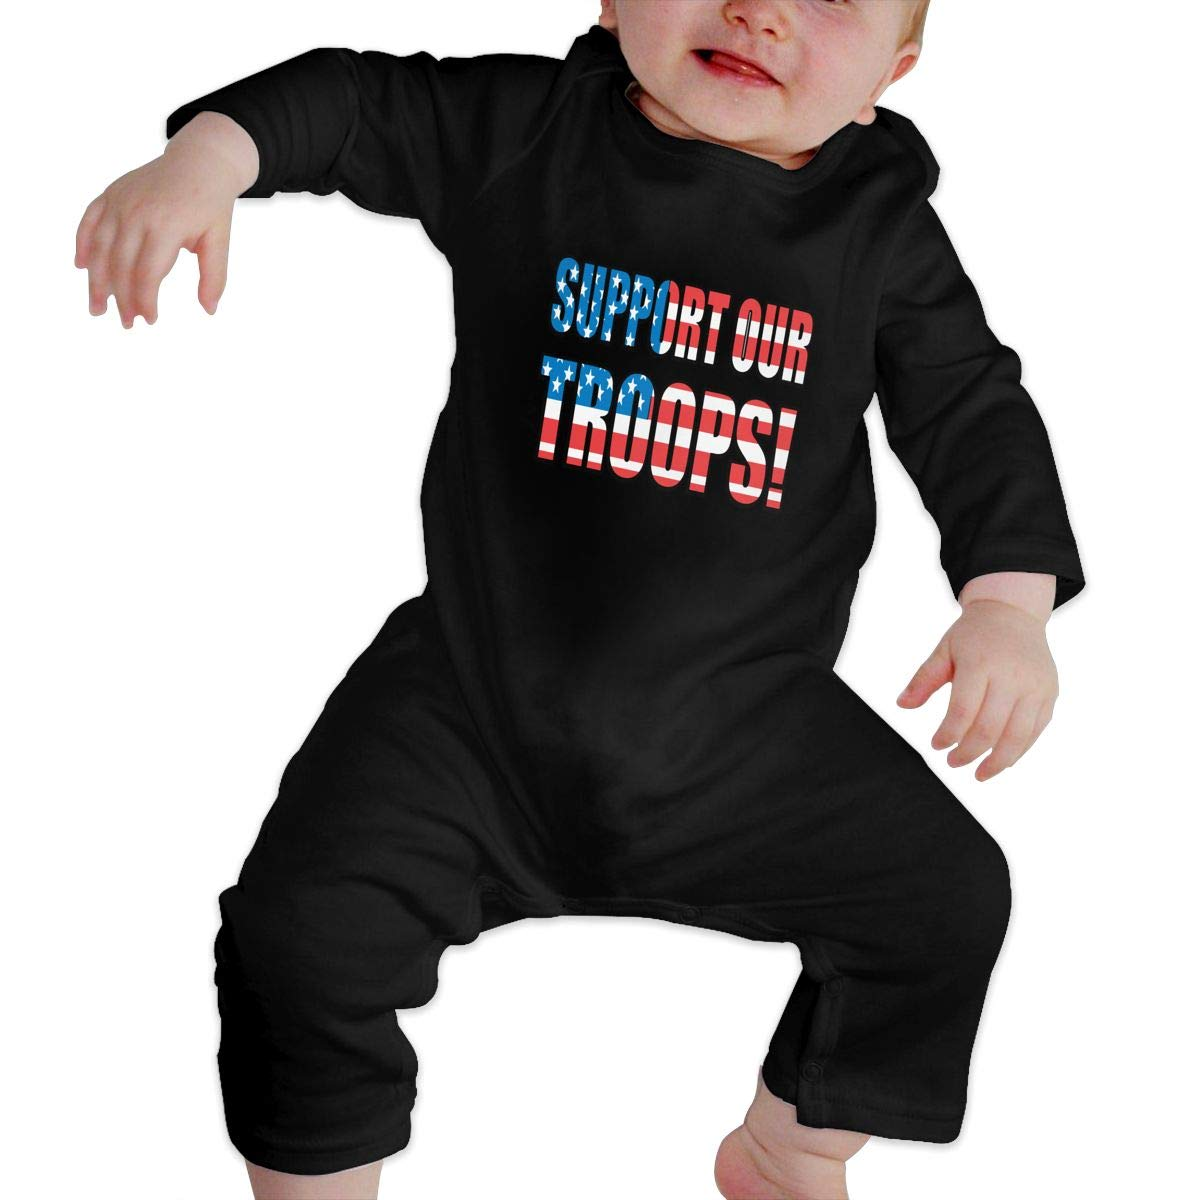 Suit 6-24 Months Baby Girls Round Collar Support Our Troops Long Sleeve Romper Jumpsuit 100/% Cotton